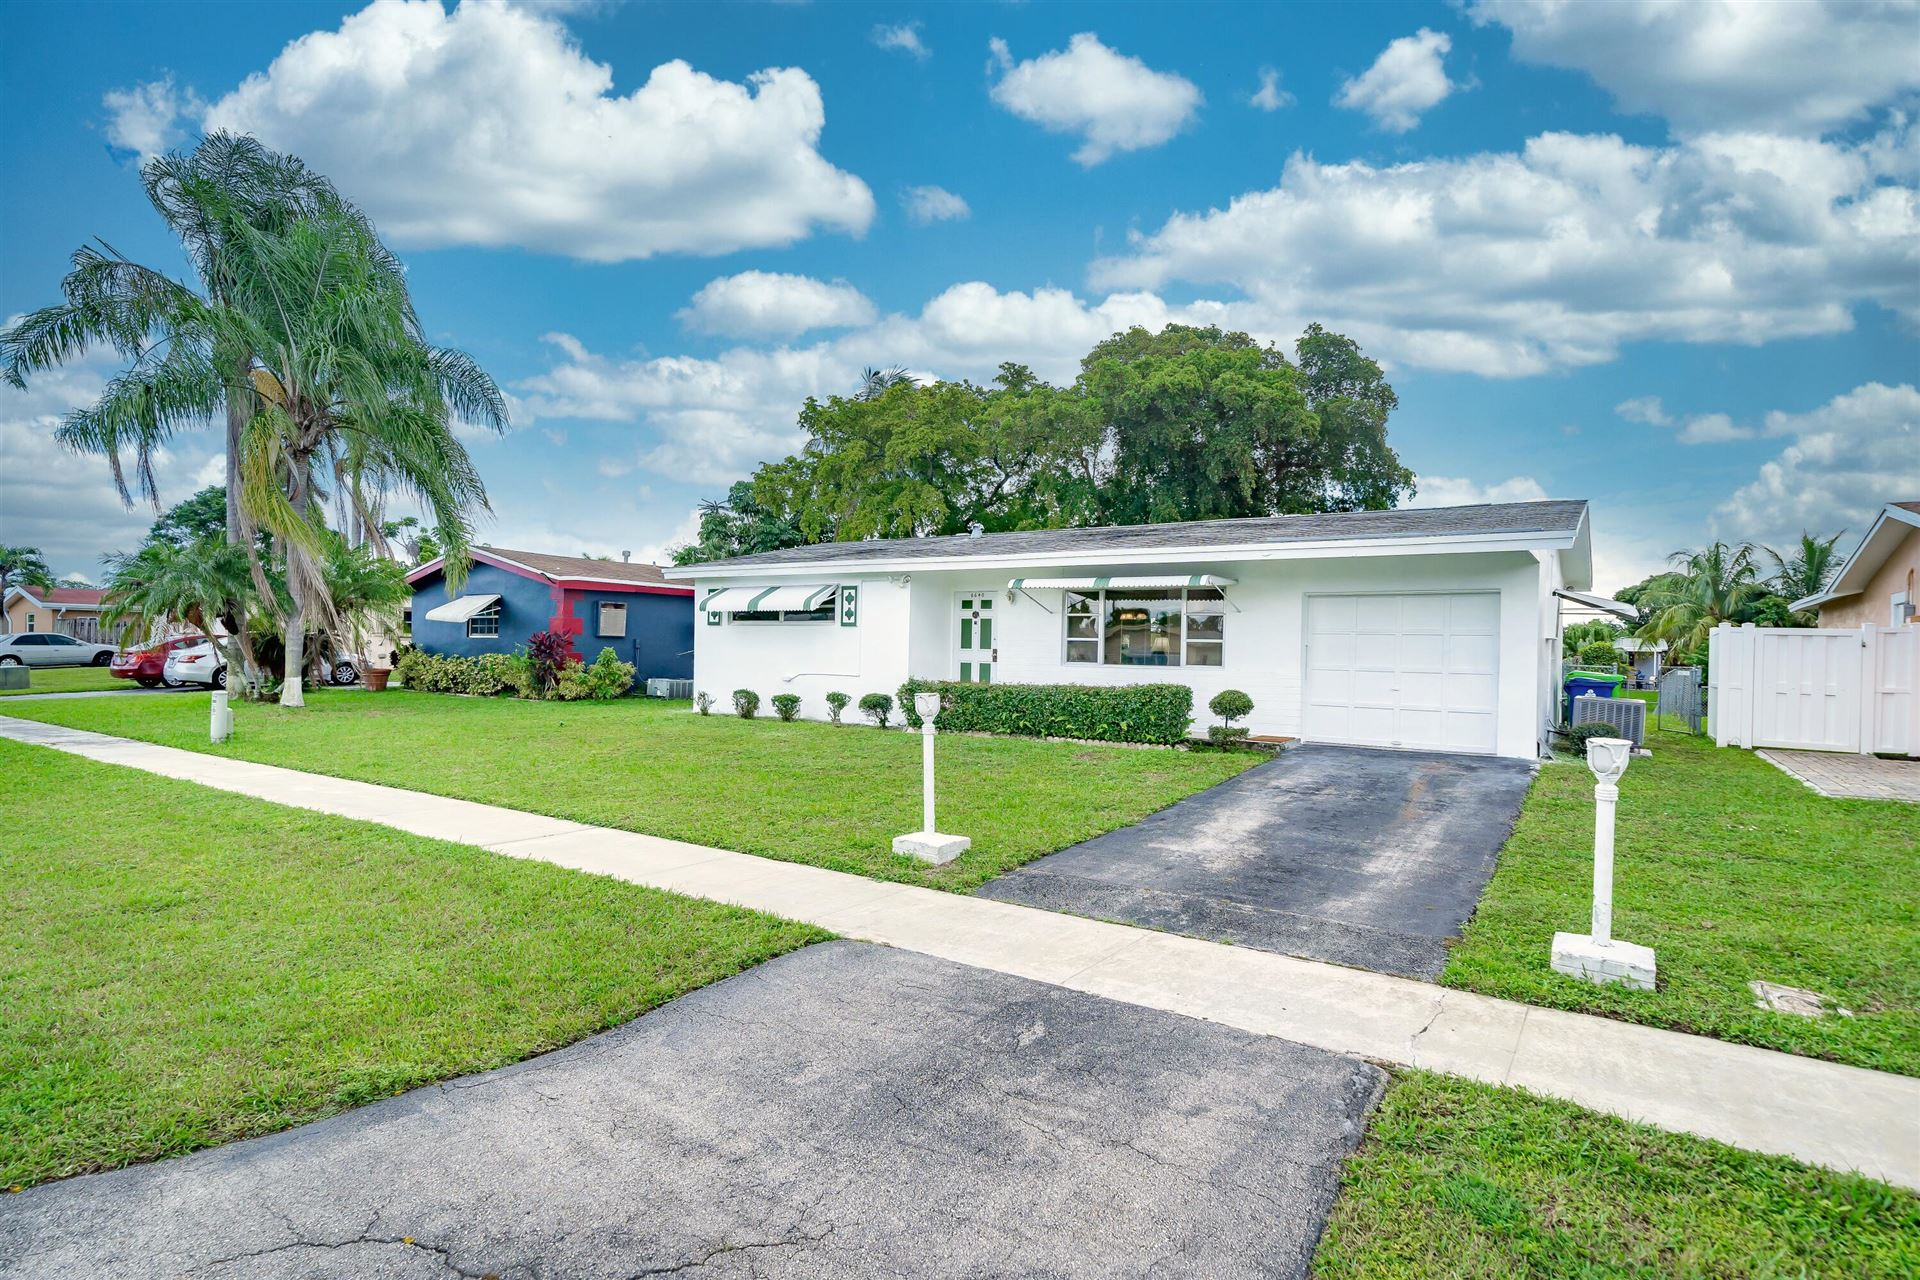 Photo of 8640 NW 27th Place, Sunrise, FL 33322 (MLS # RX-10752634)